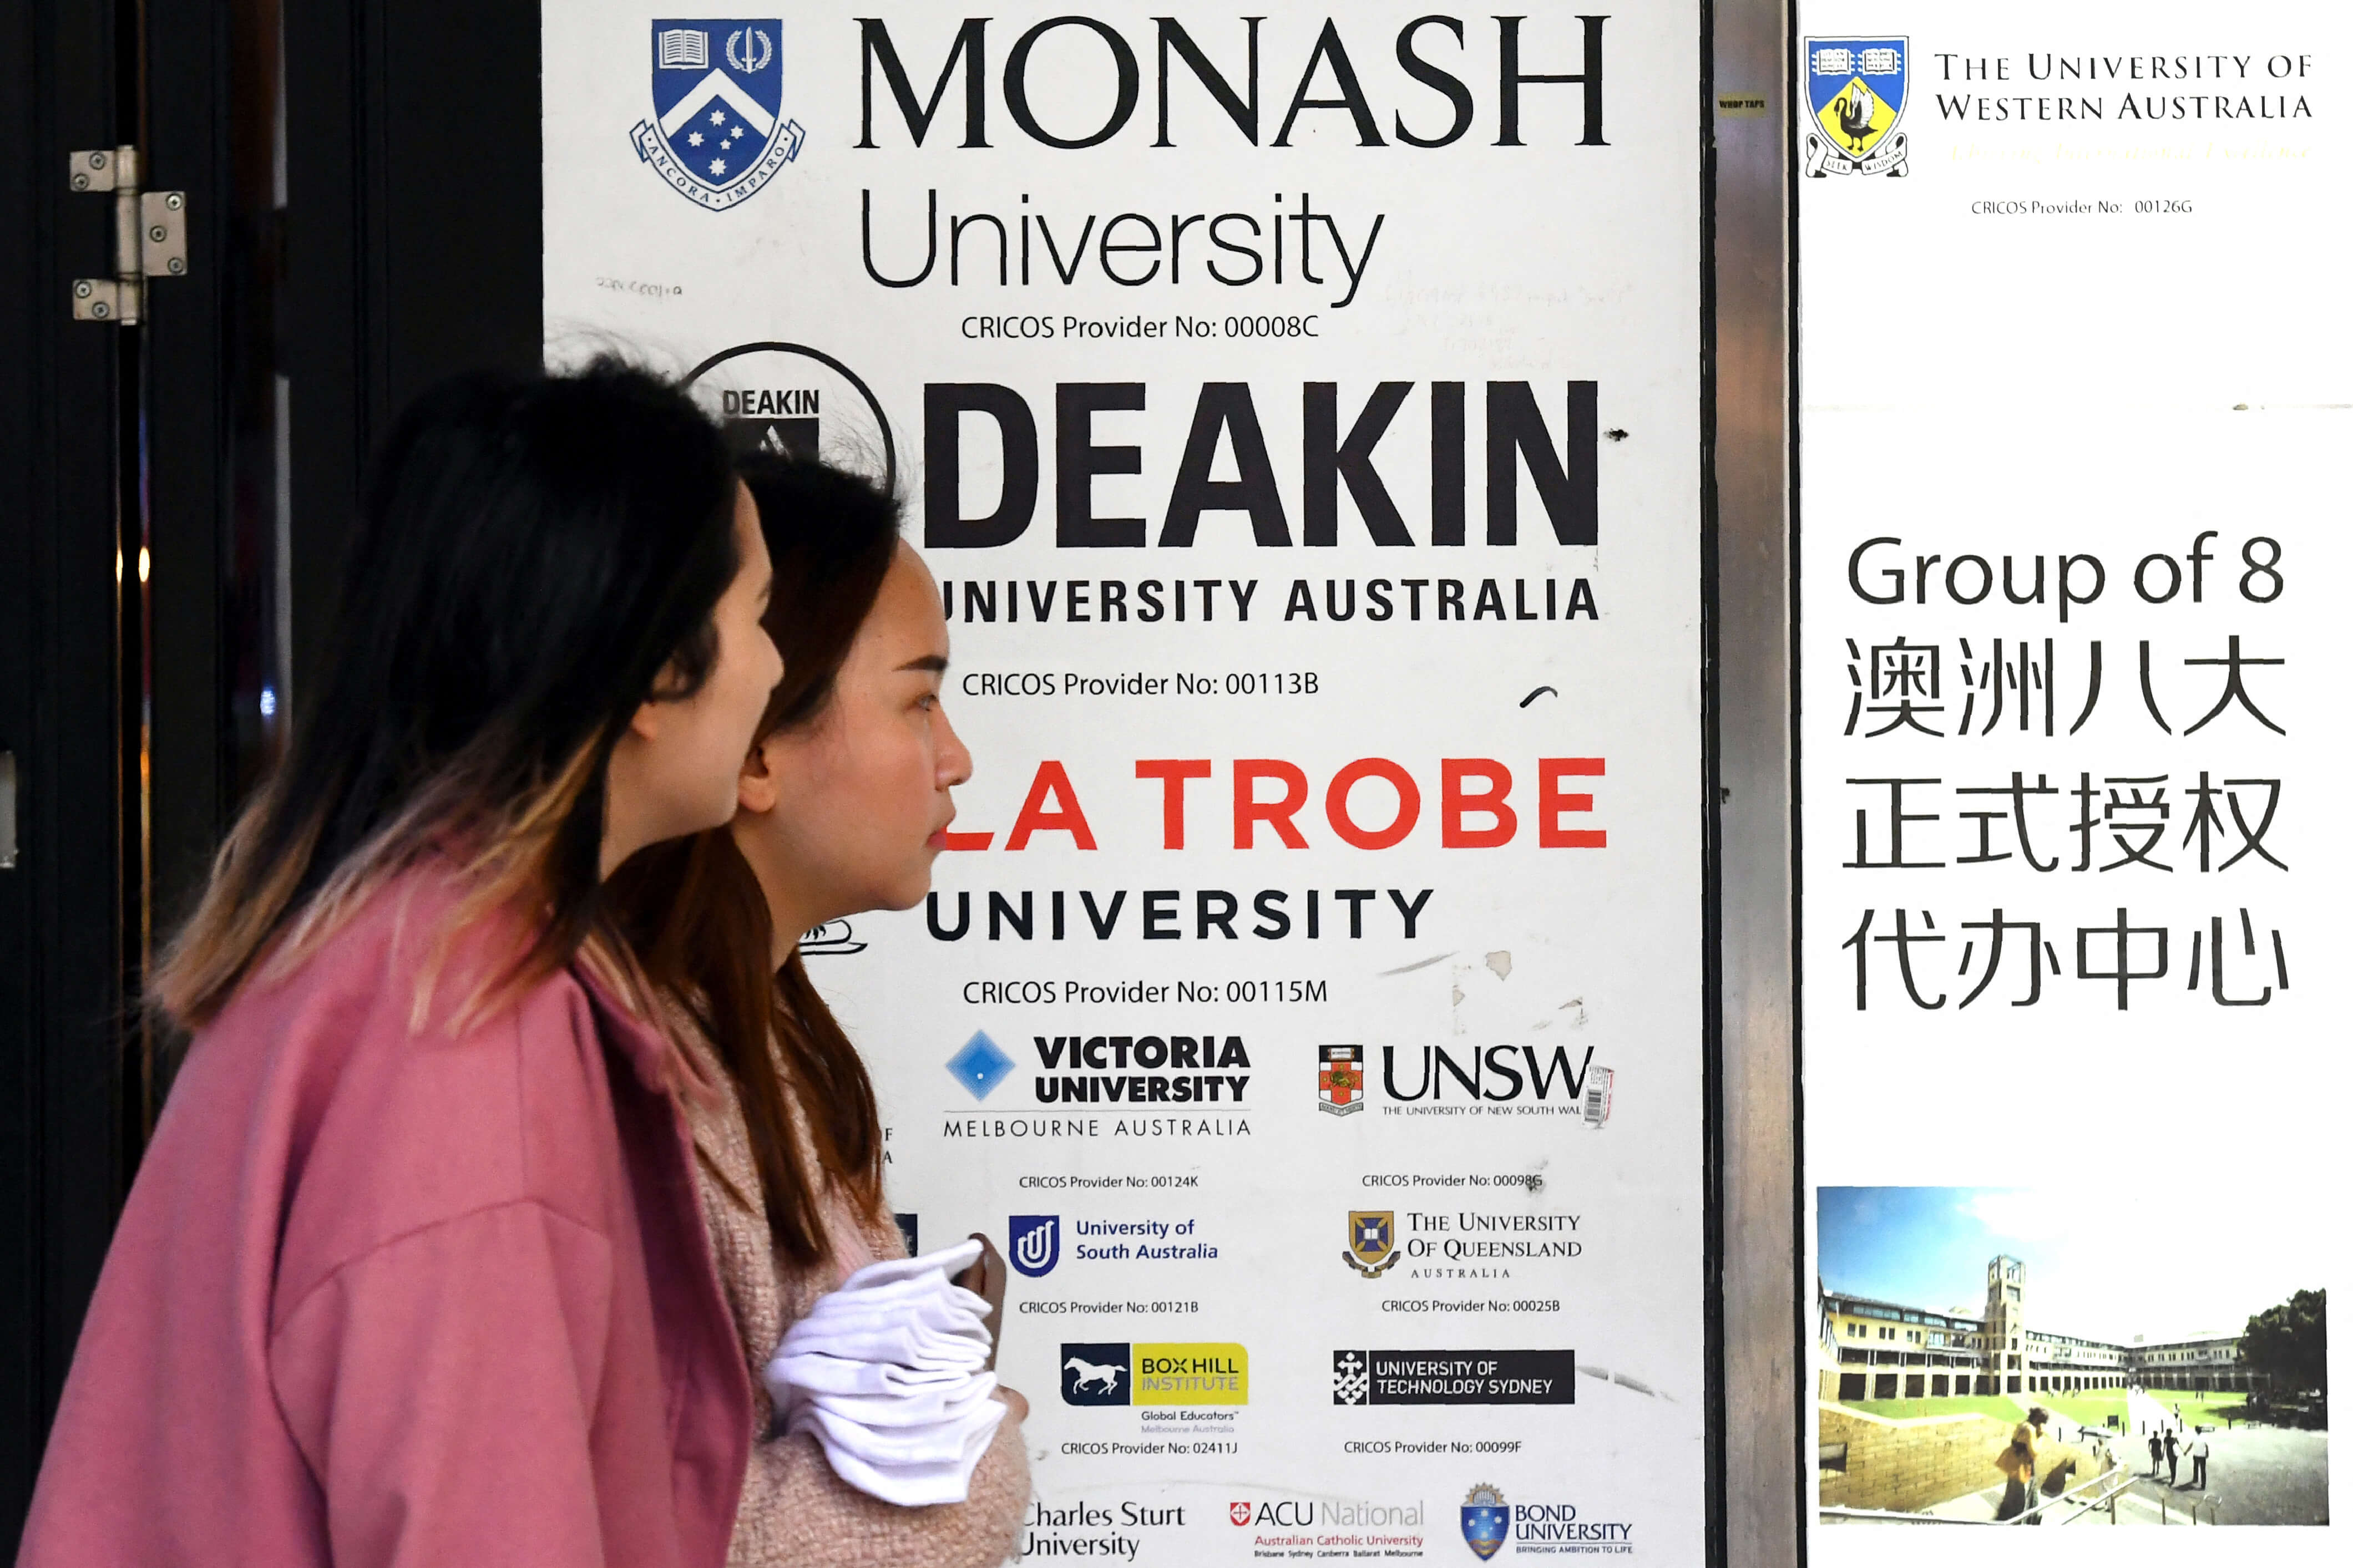 Australia: How academic freedom and the public university are at risk